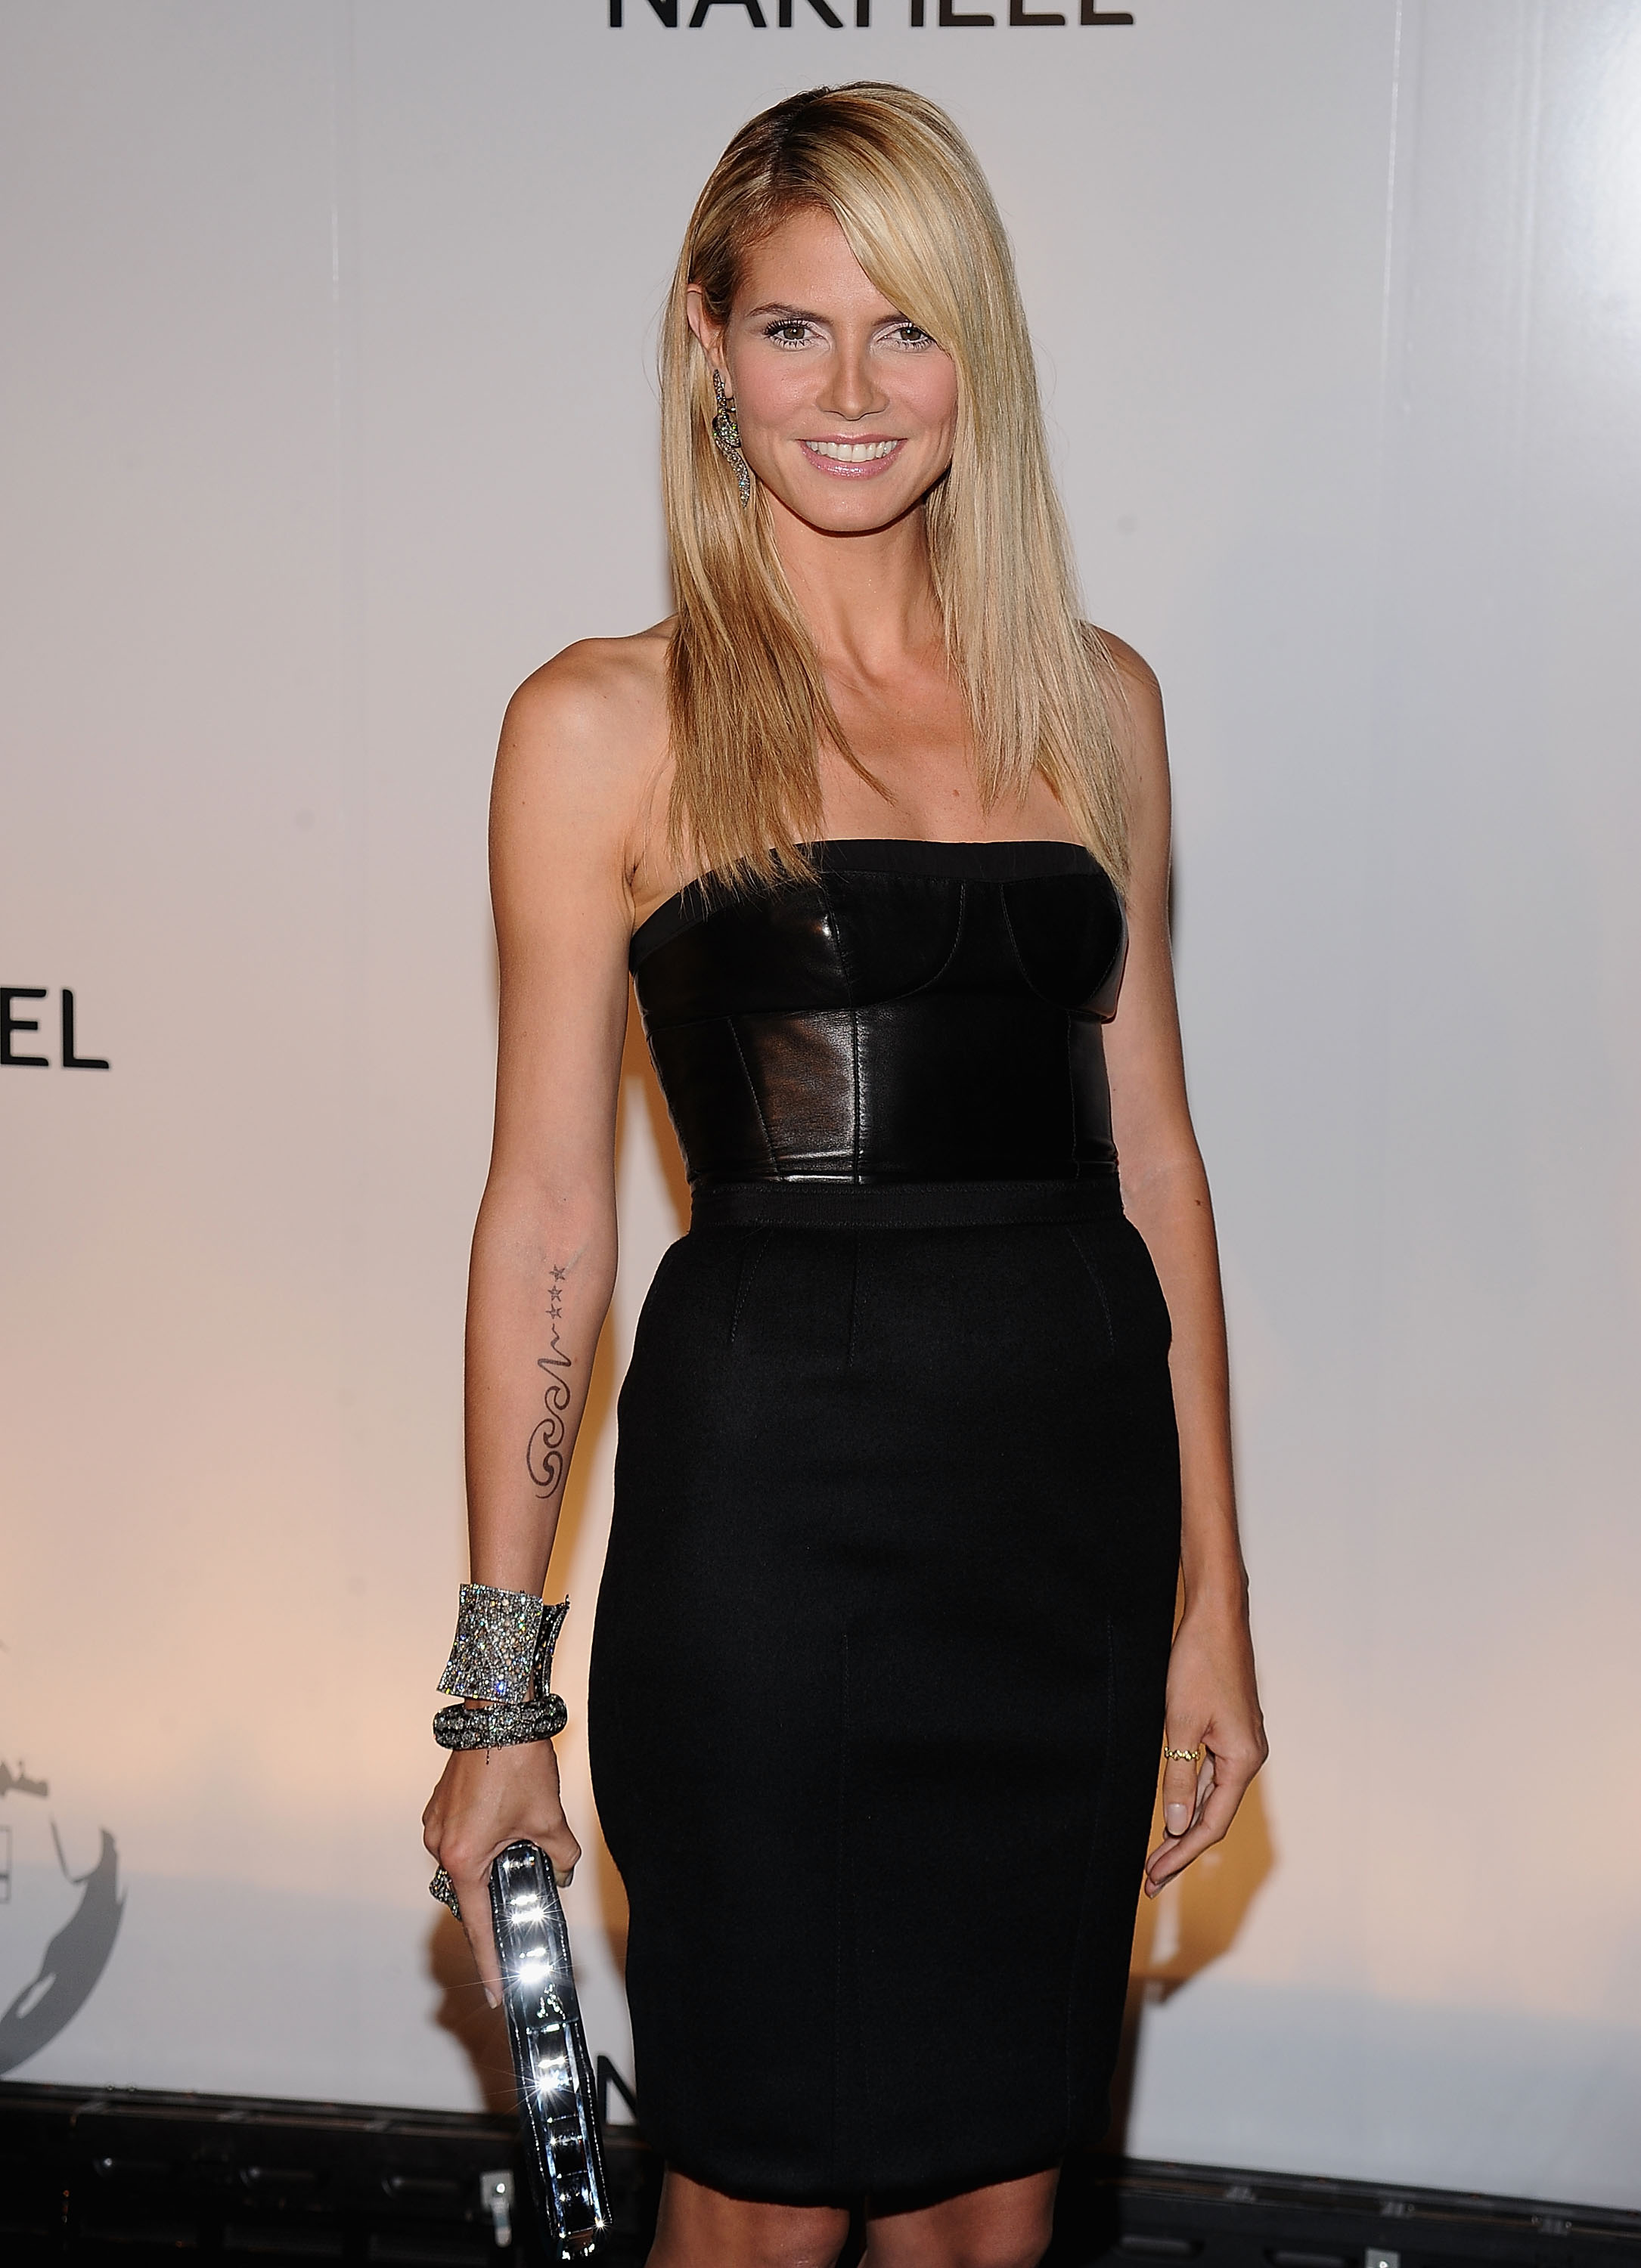 Model Heidi Klum attends the Trump International Hotel and Tower Dubai launch on June 23, 2008 at The Park Avenue Plaza in New York.